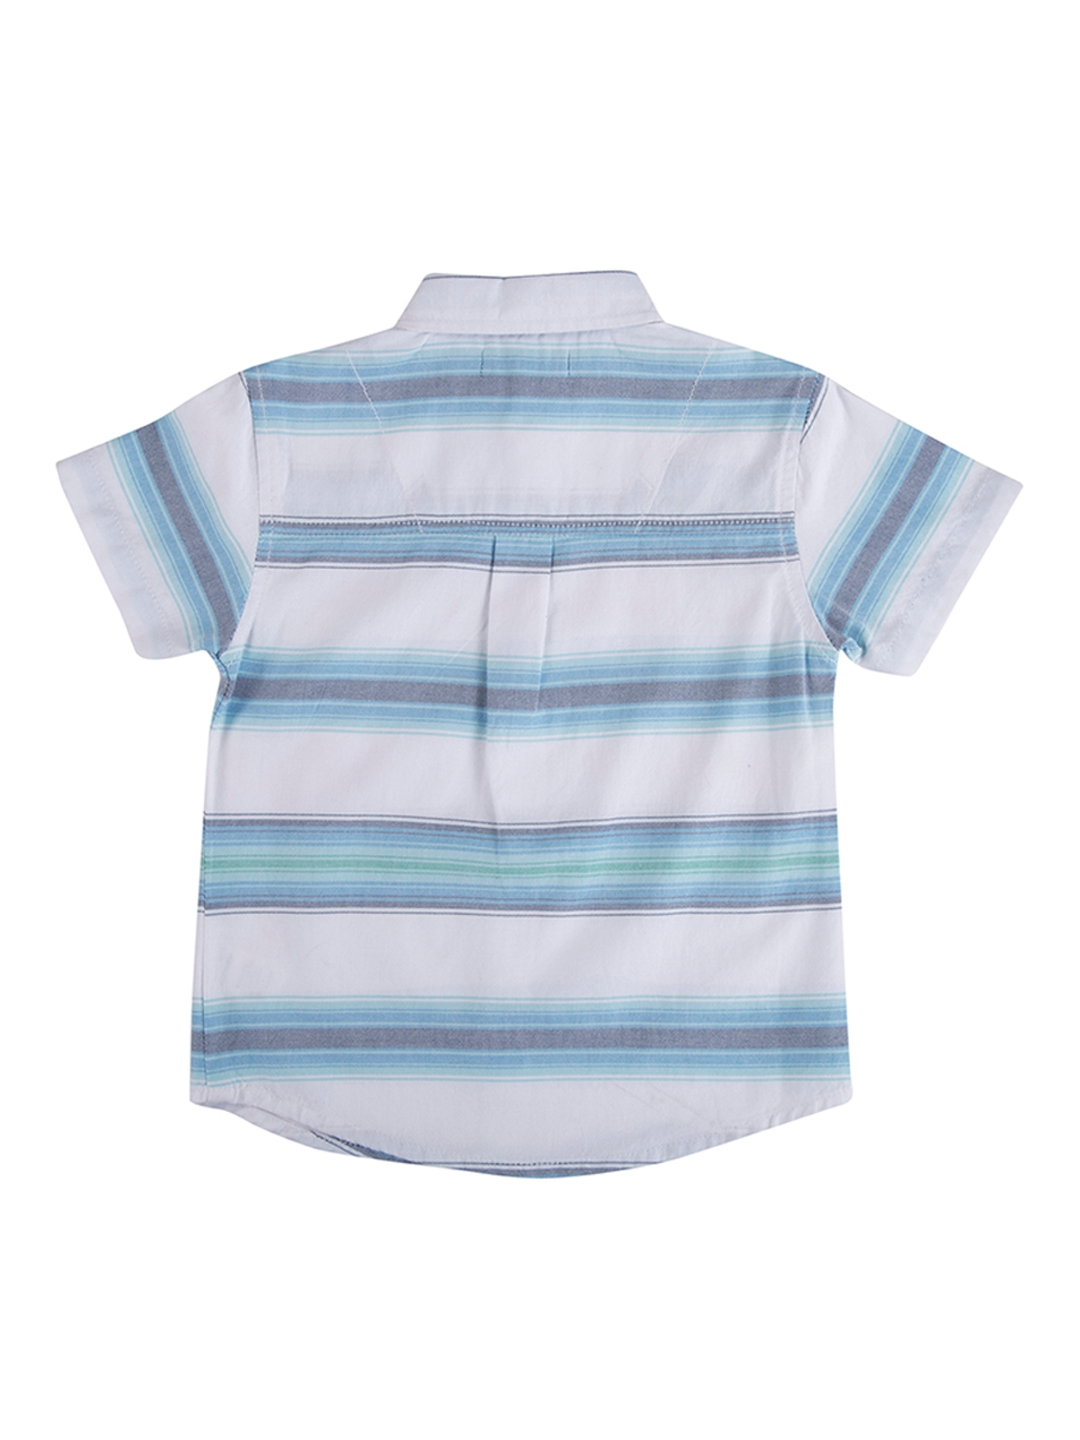 0773092f Buy Terry Fator Boys White & Blue Regular Fit Striped Casual Shirt ...